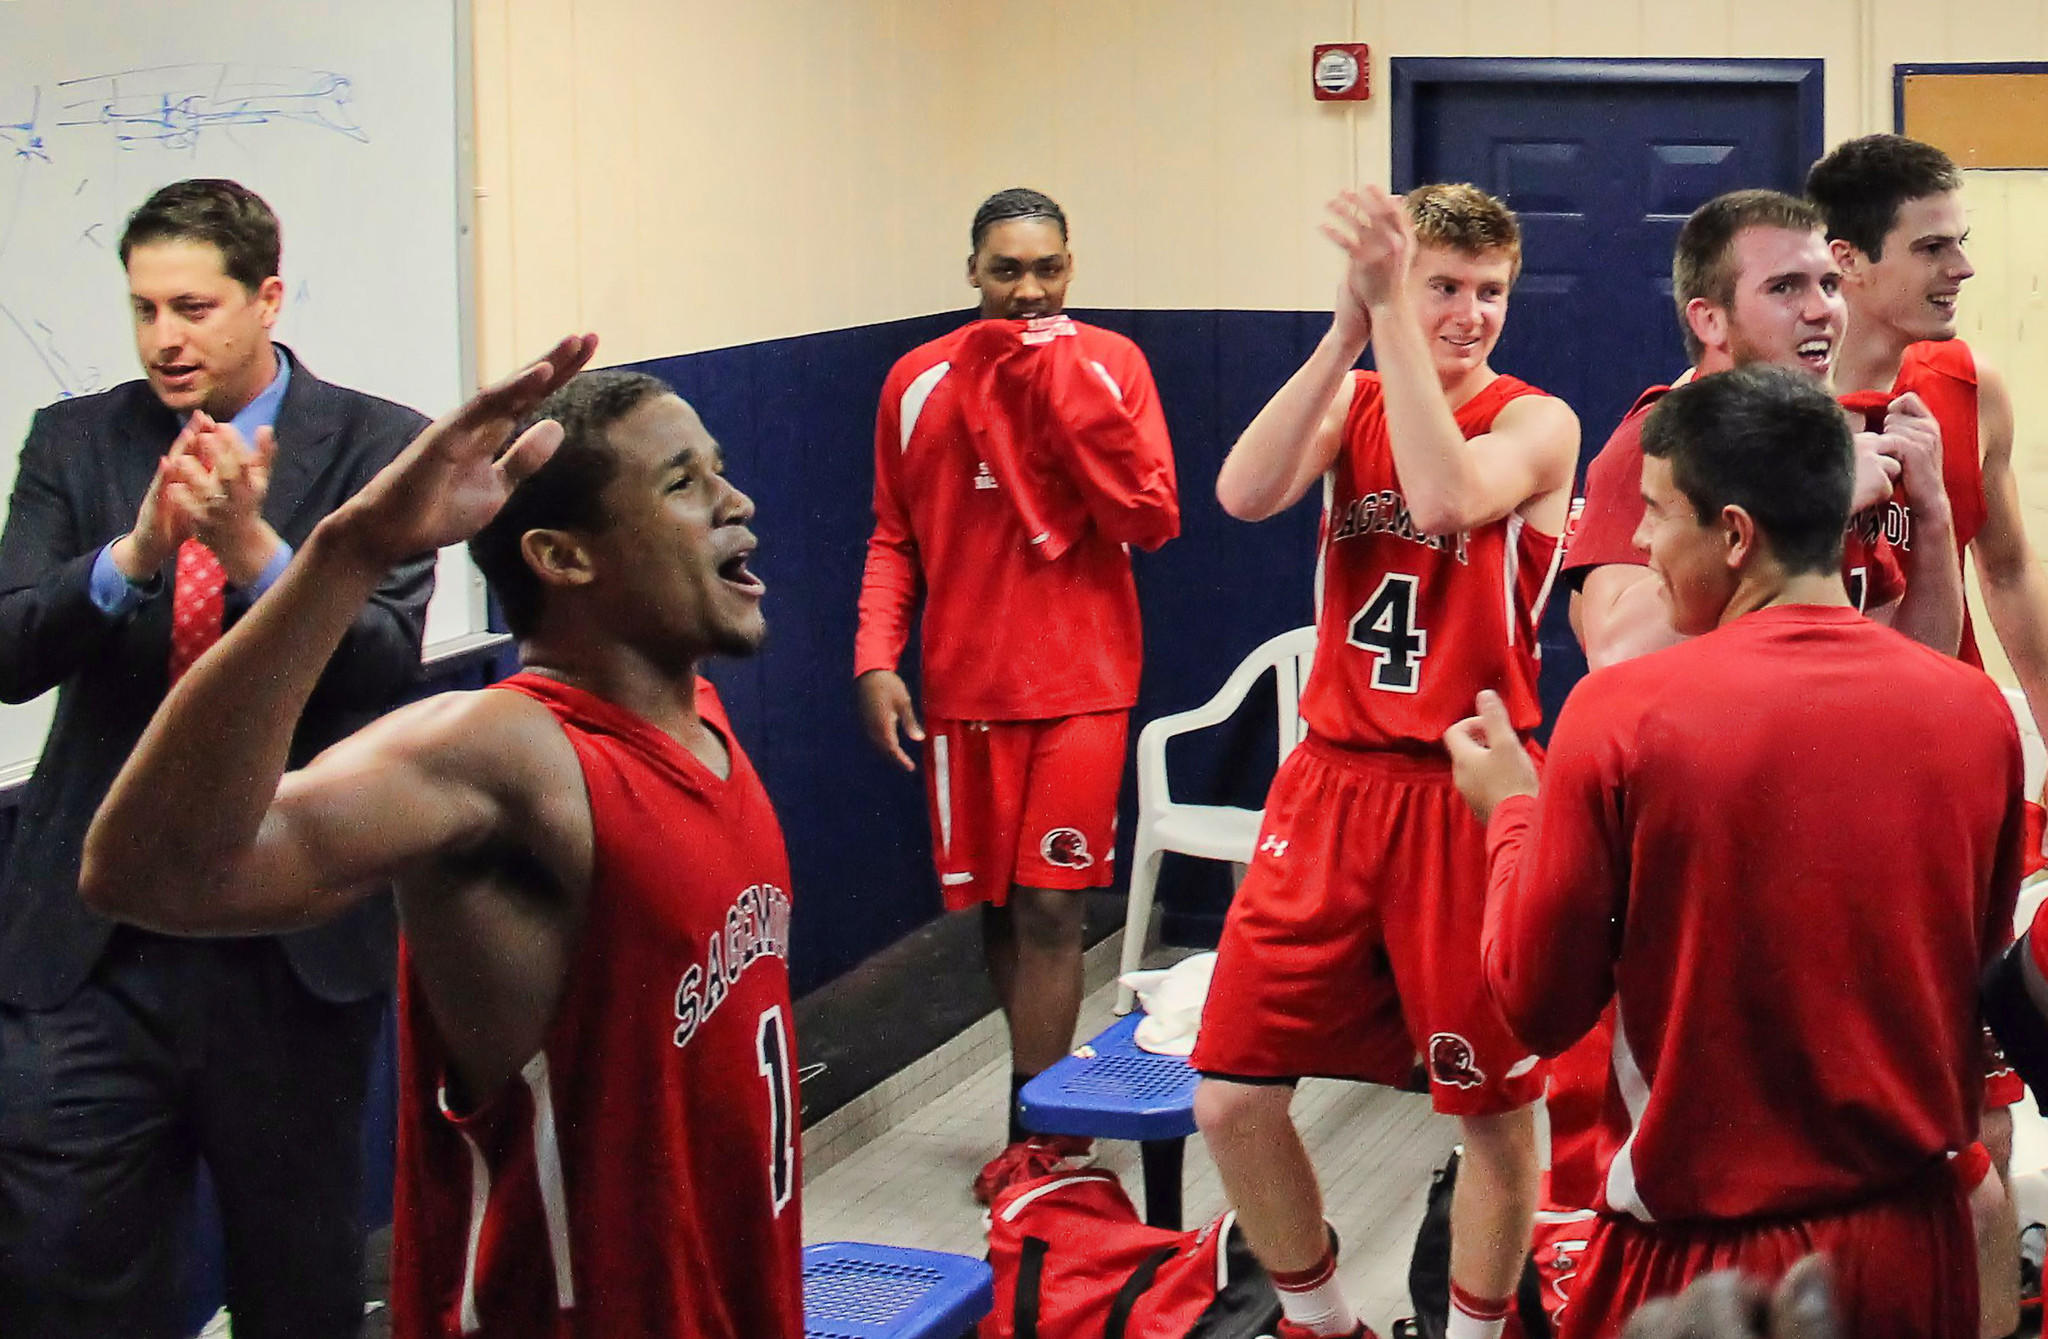 Sagemont coach Adam Ross and his players celebrate after a 91-79 victory over Florida Air Academy.